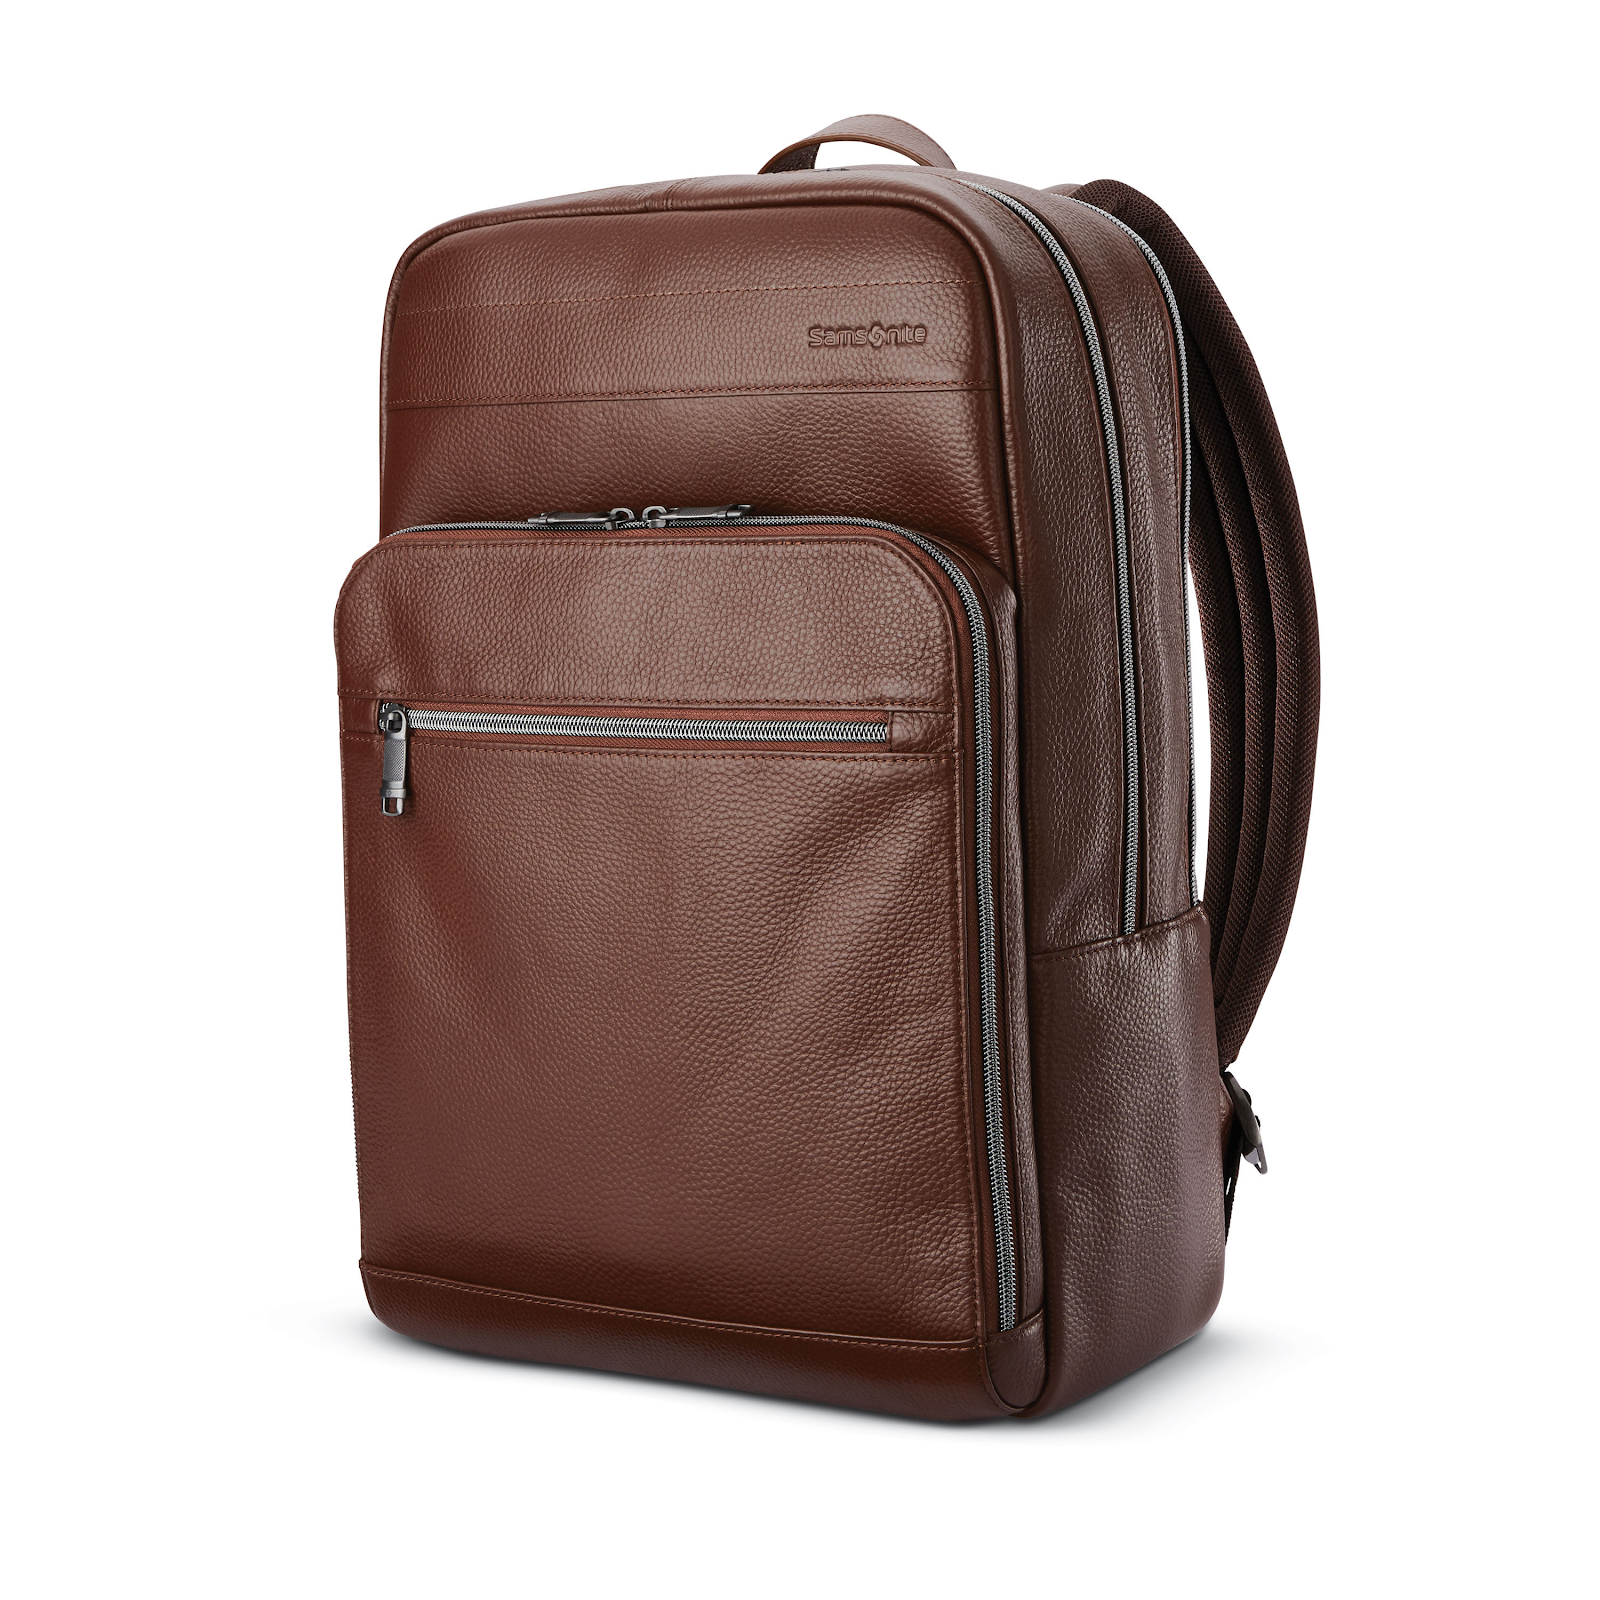 Samsonite Leather Slim Backpack